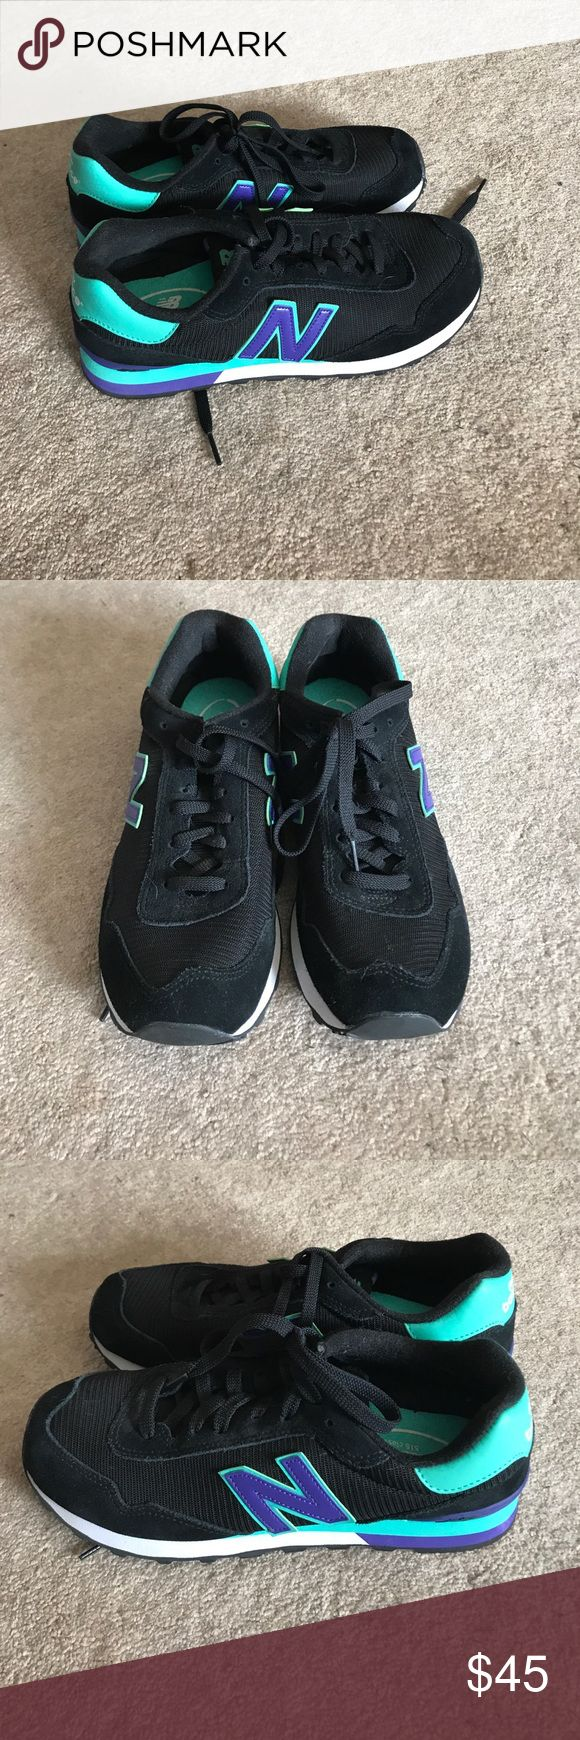 New Balance sneaker Black, real and purple New Balance sneaker, worn a handful of times. Size 9.5 New Balance Shoes Sneakers